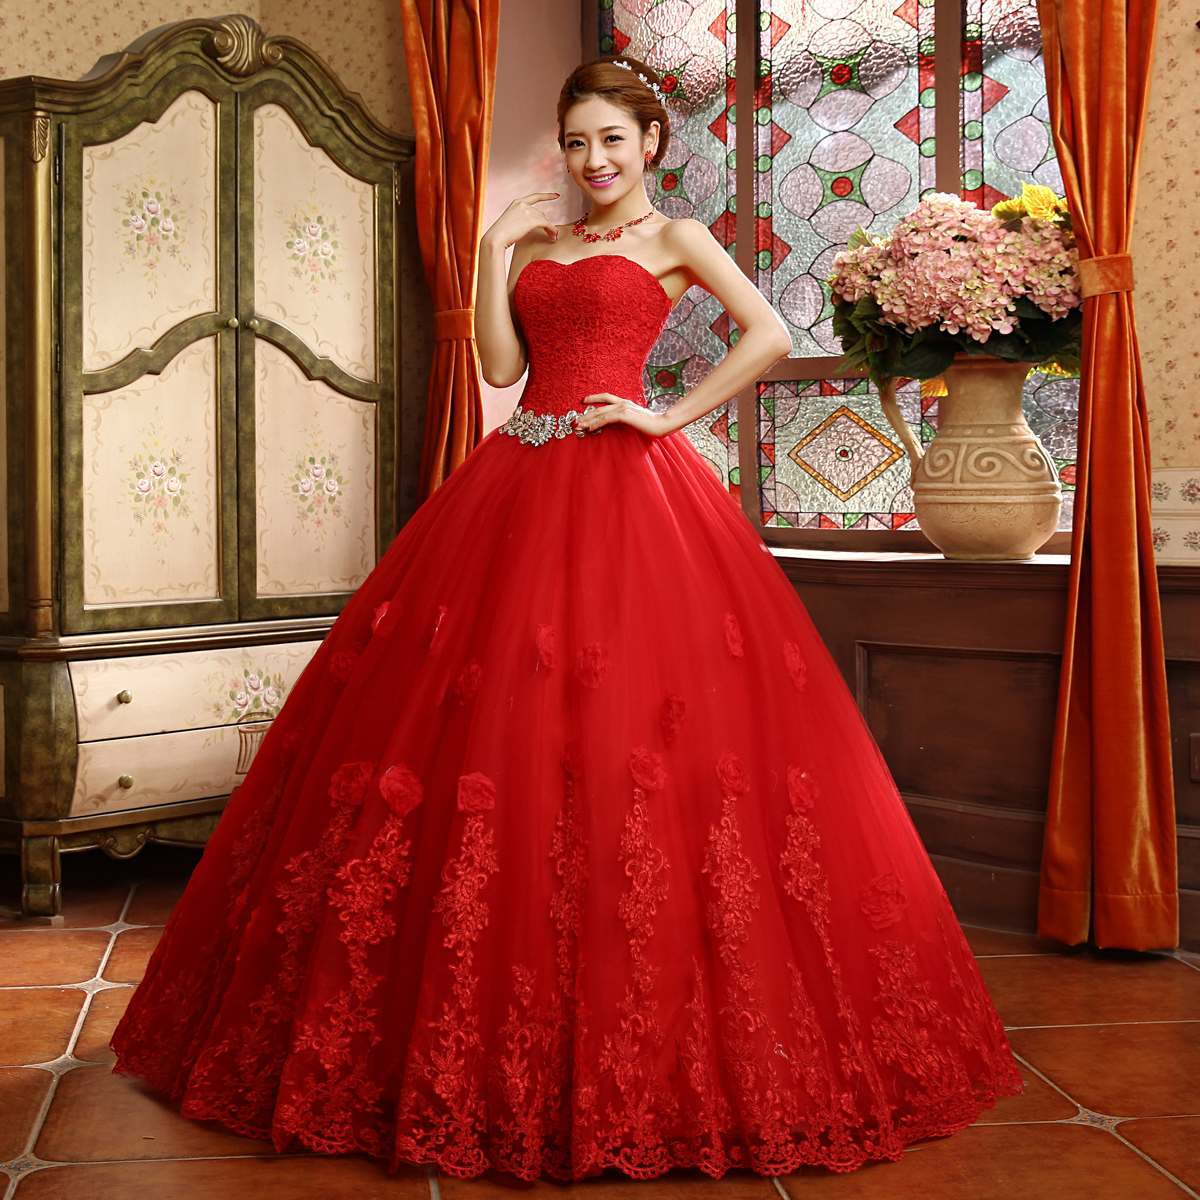 colored wedding dresses evening gowns cocktail dre red wedding dresses Moonlight Couture Spring Wedding Dresses